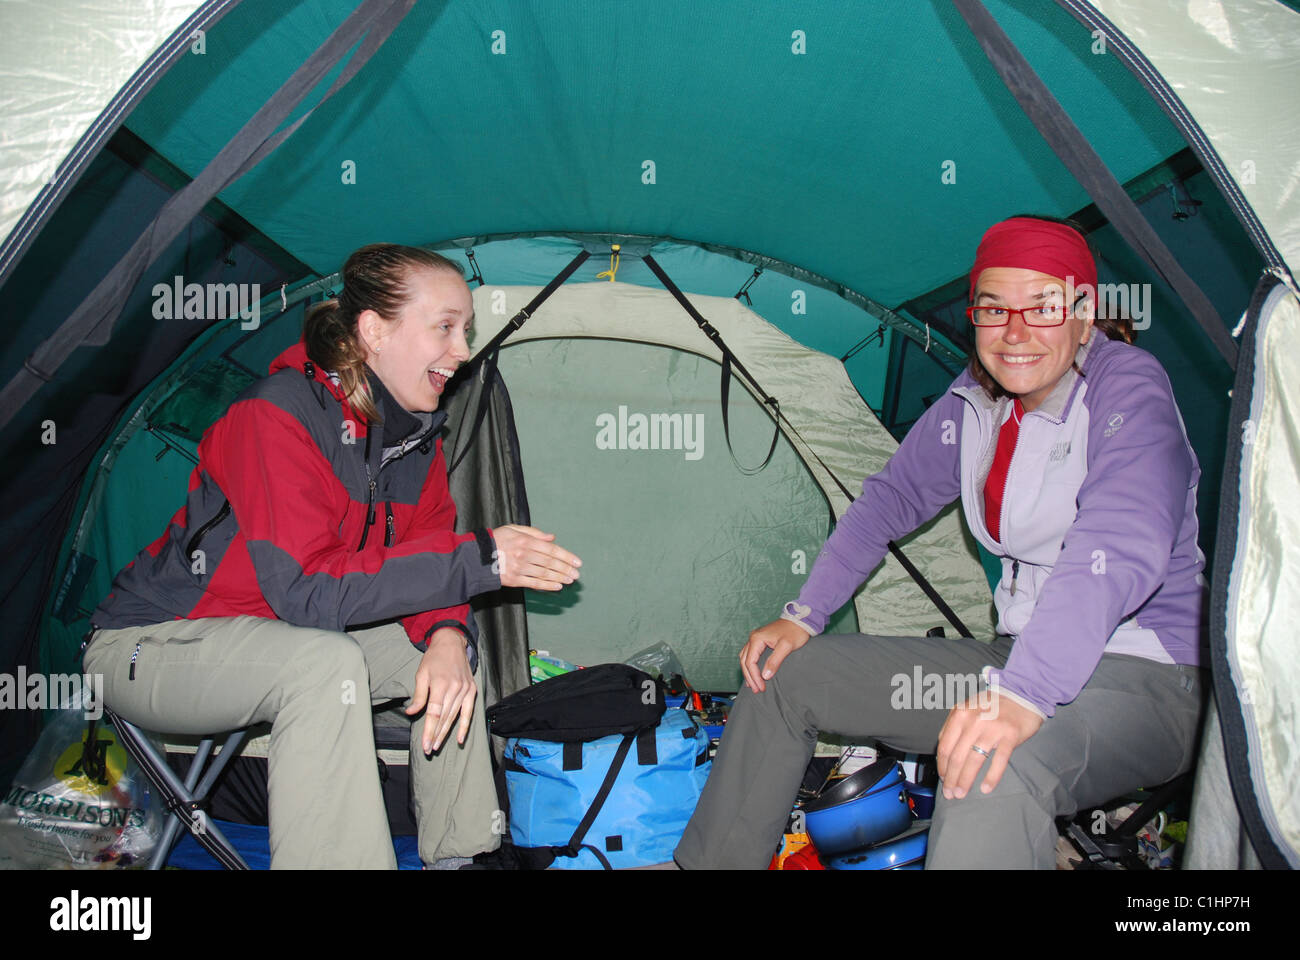 two-women-laughing-in-a-tent-C1HP7H.jpg